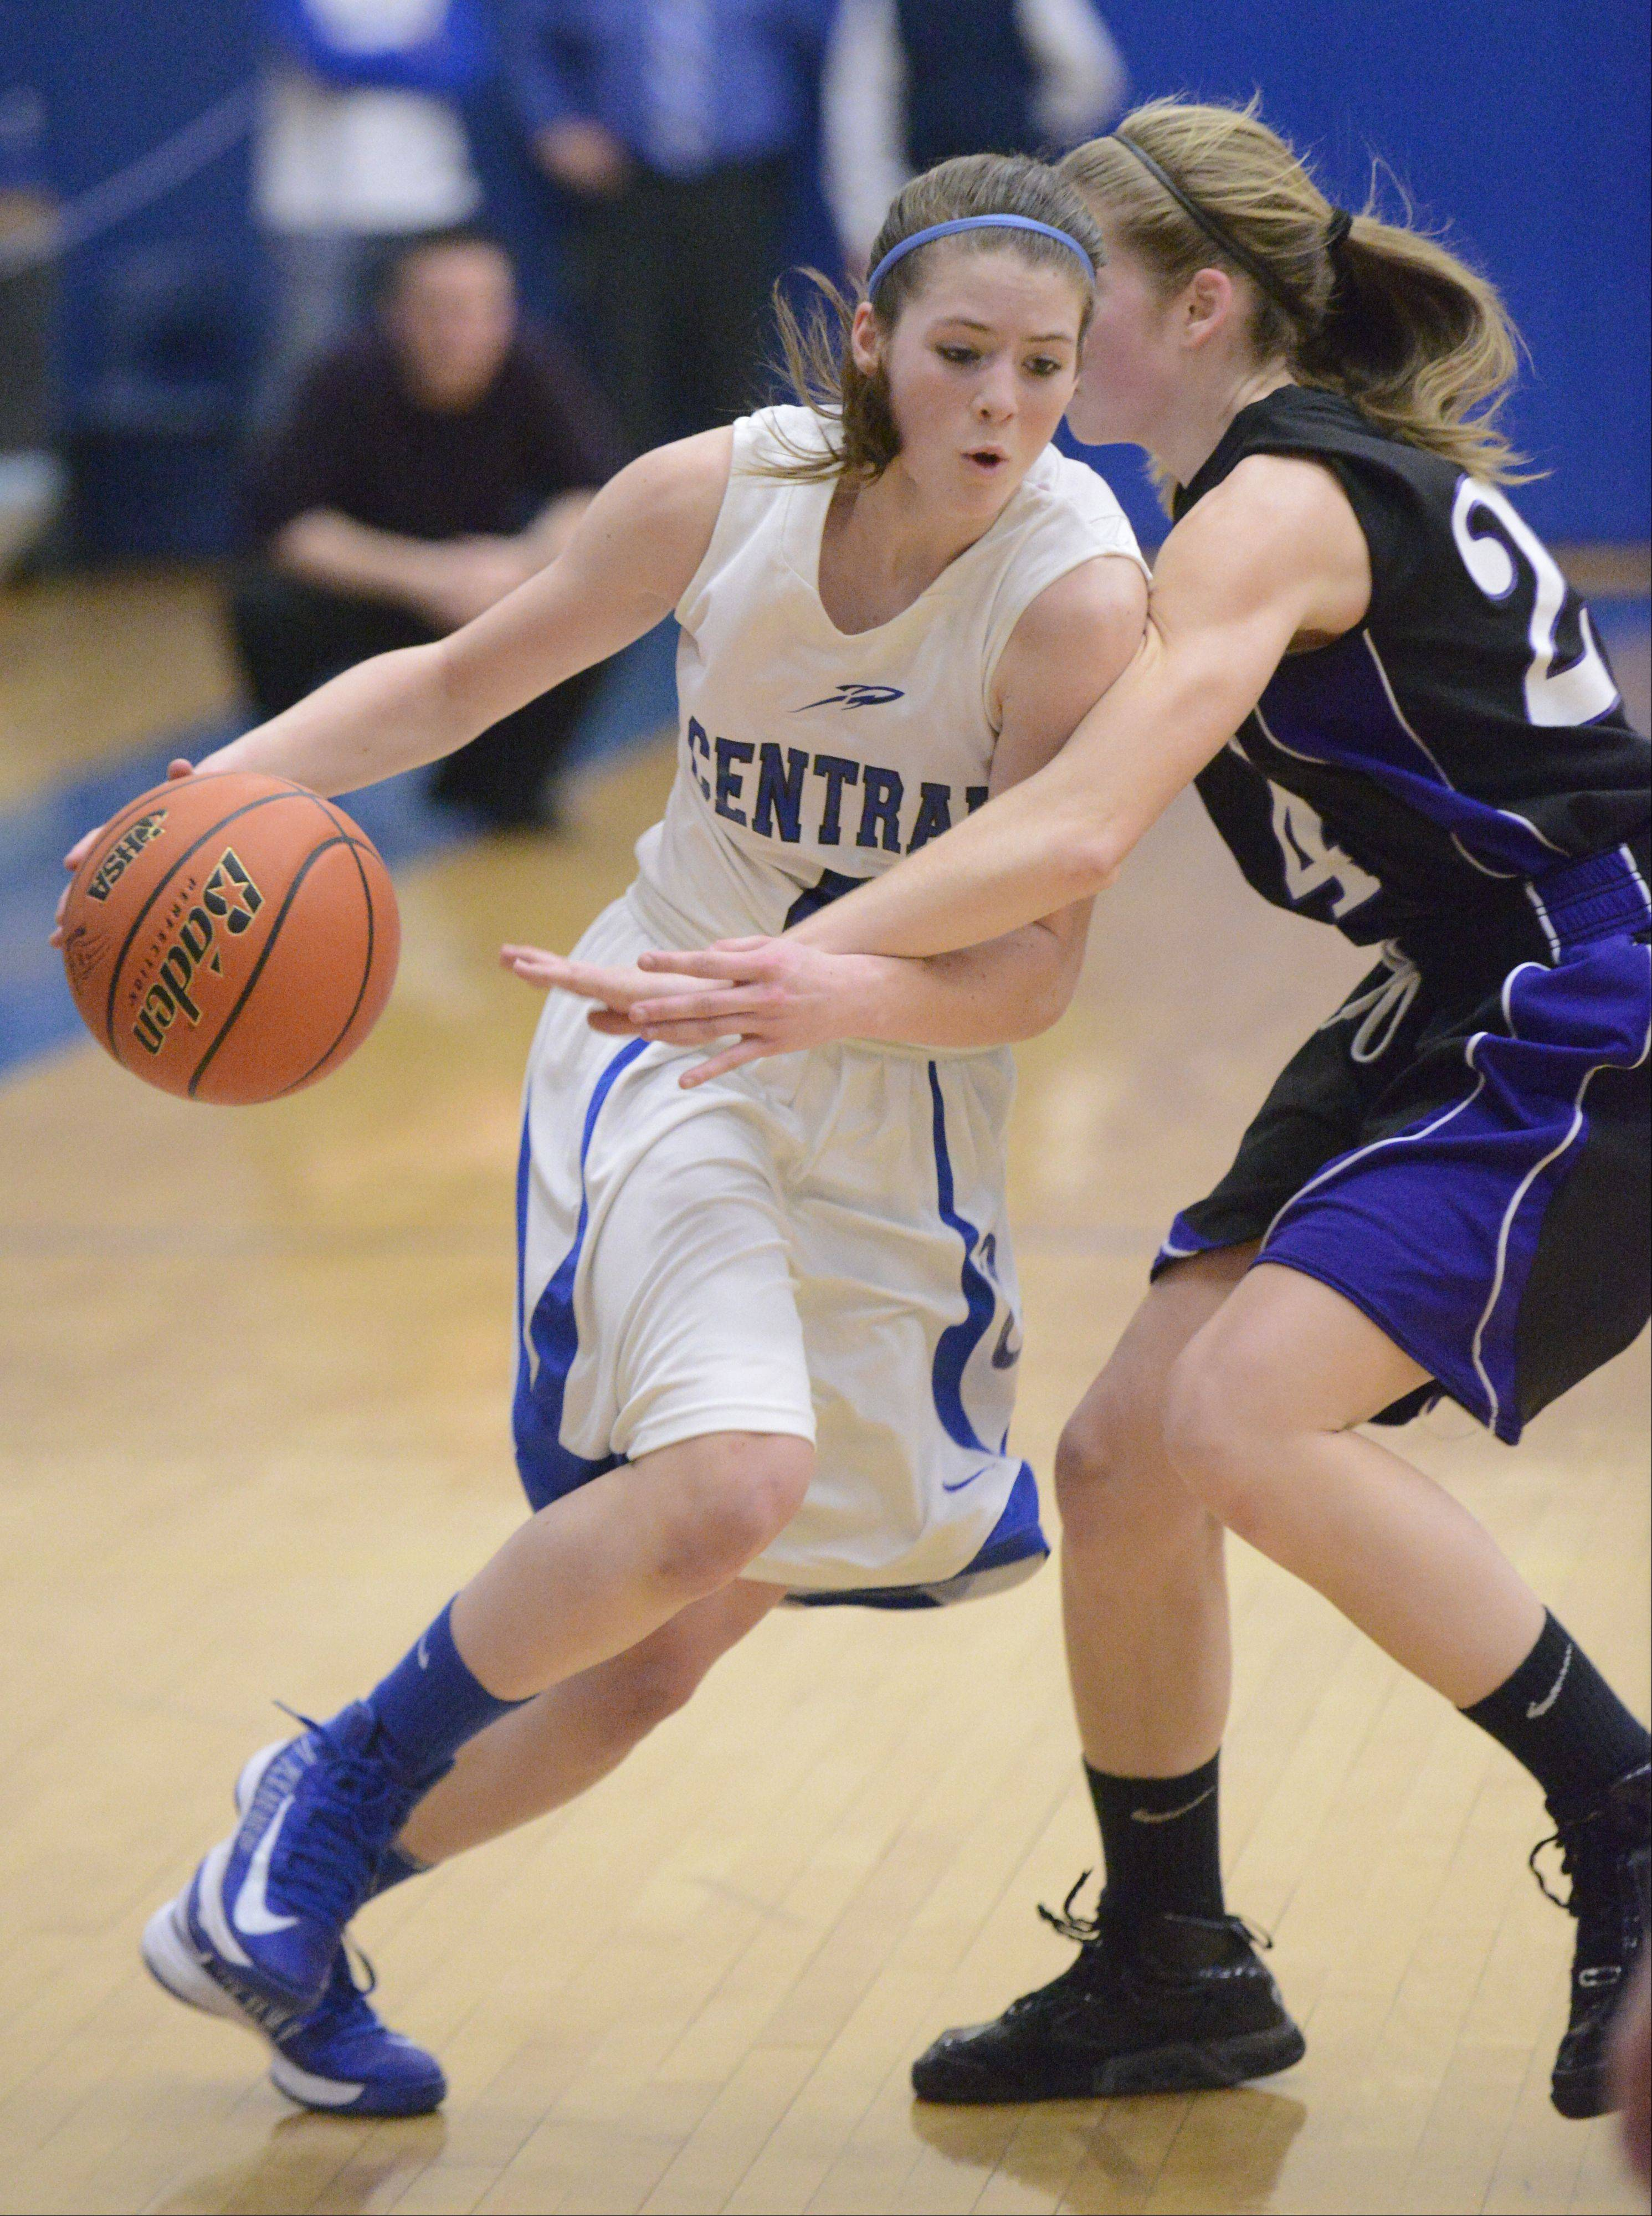 Burlington Central's Kayla Ross, left, works against the defense of Hampshire's Nikki Dumoulin Wednesday night during Class 3A regional action at Burlington.